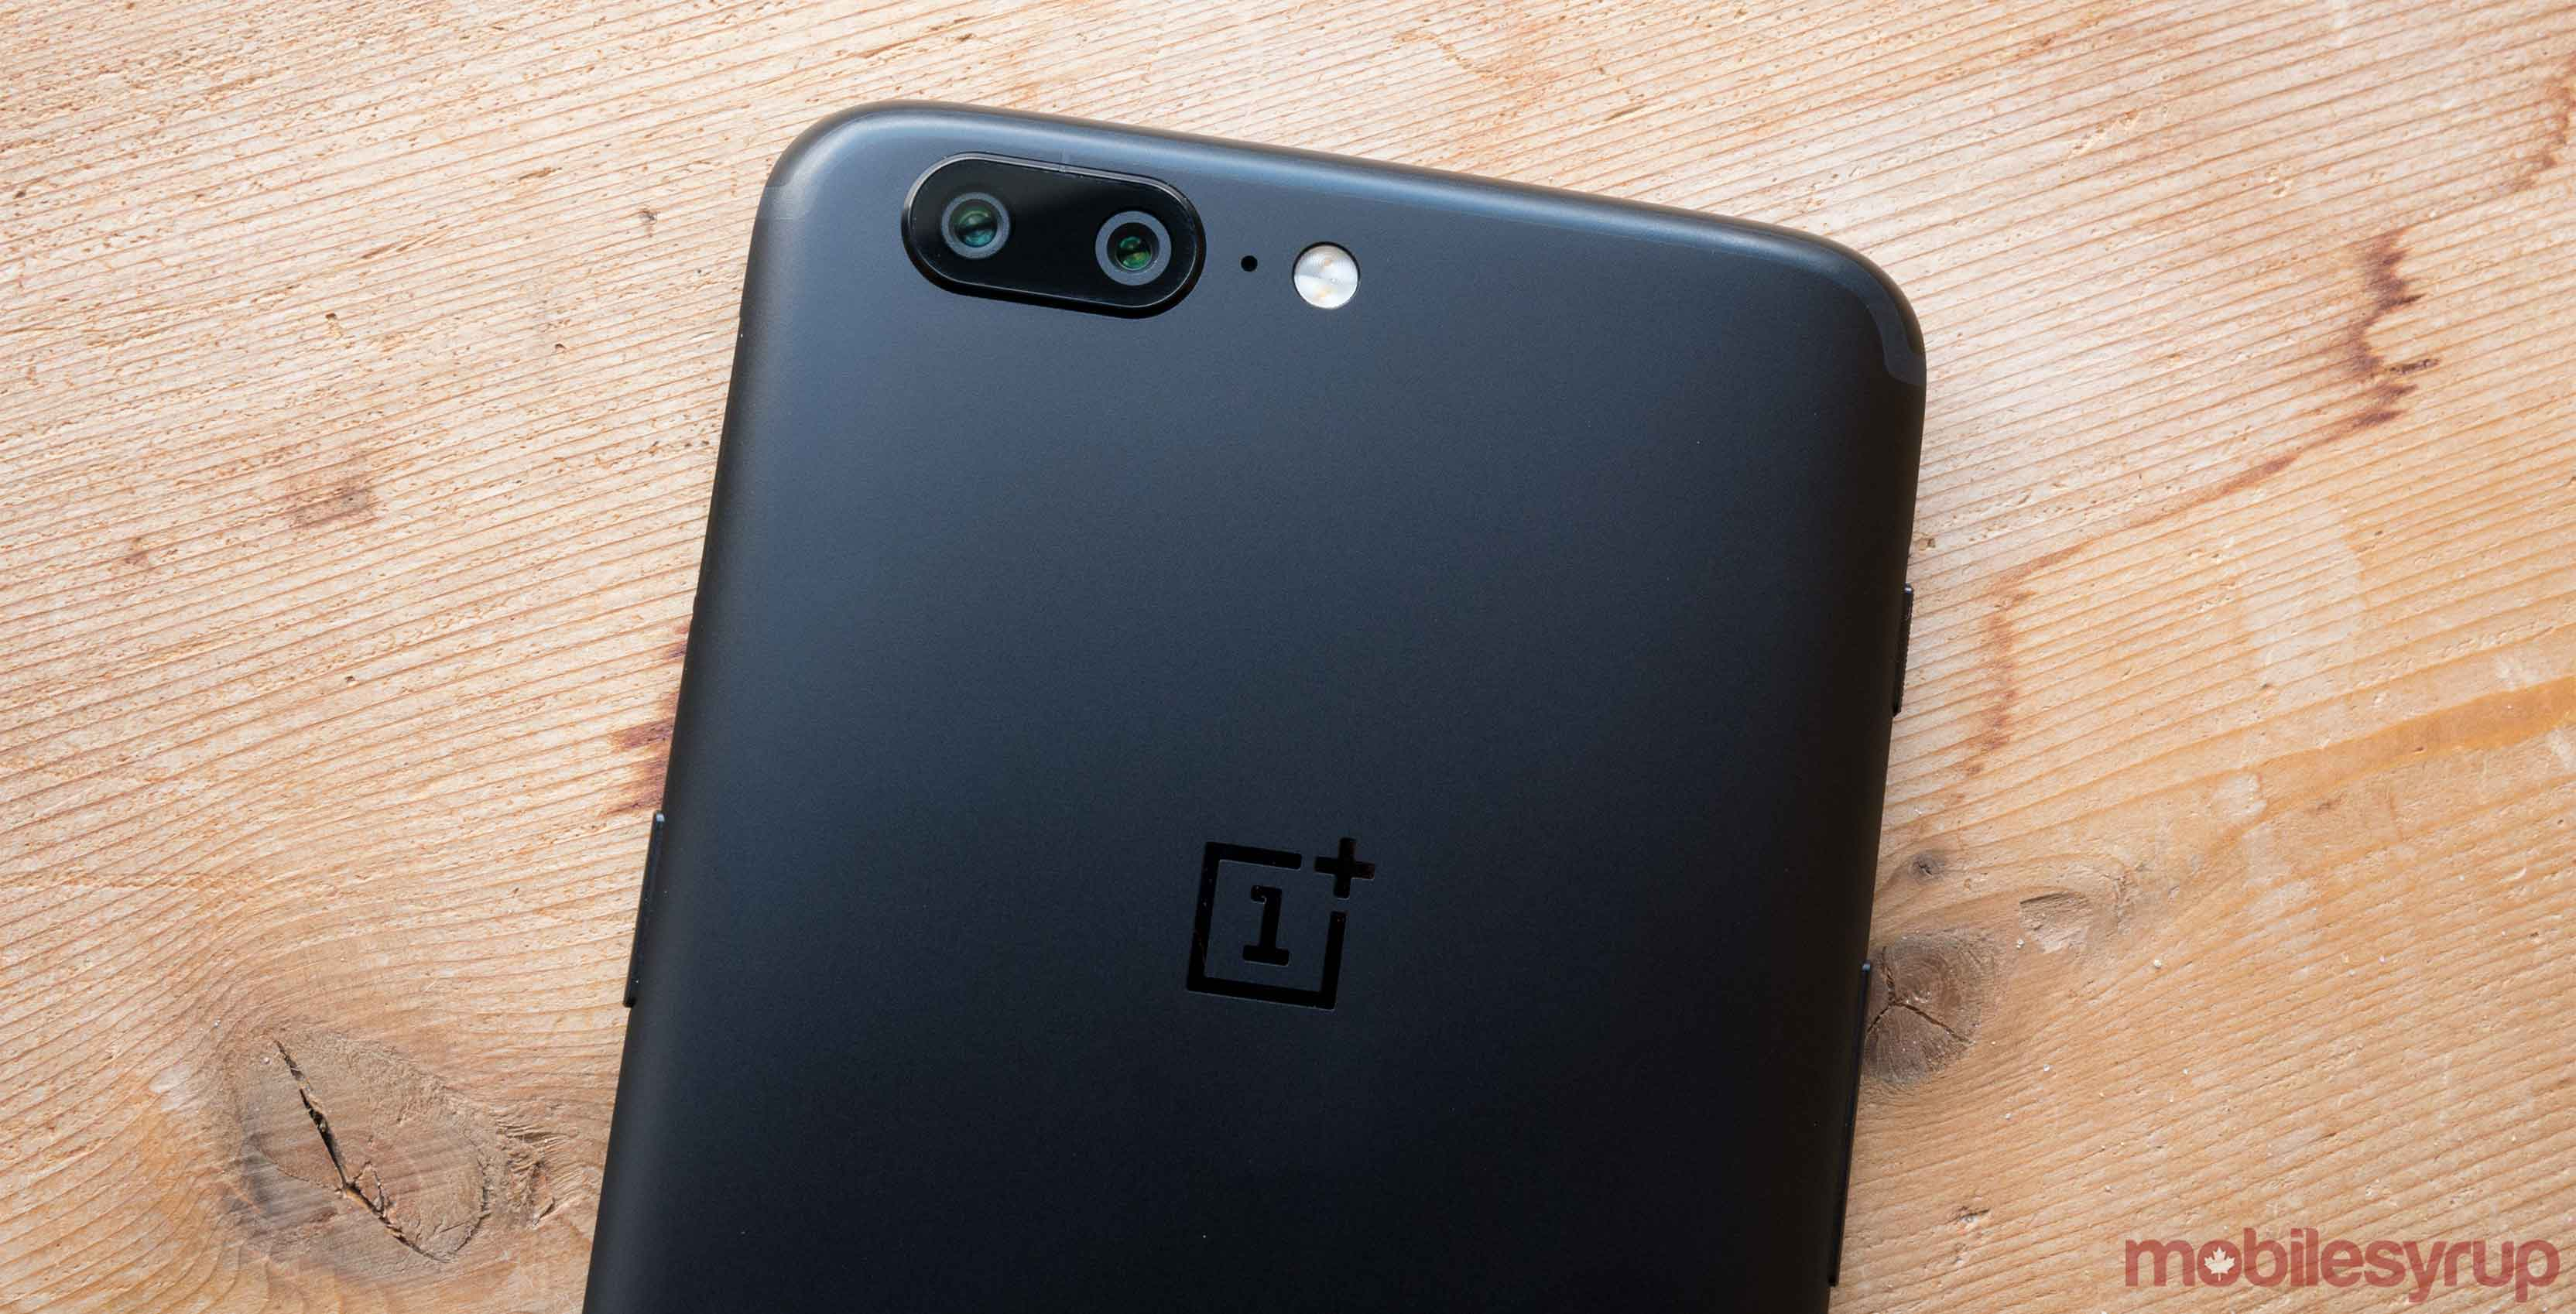 OnePlus is giving students a 10 percent discount on its smartphone